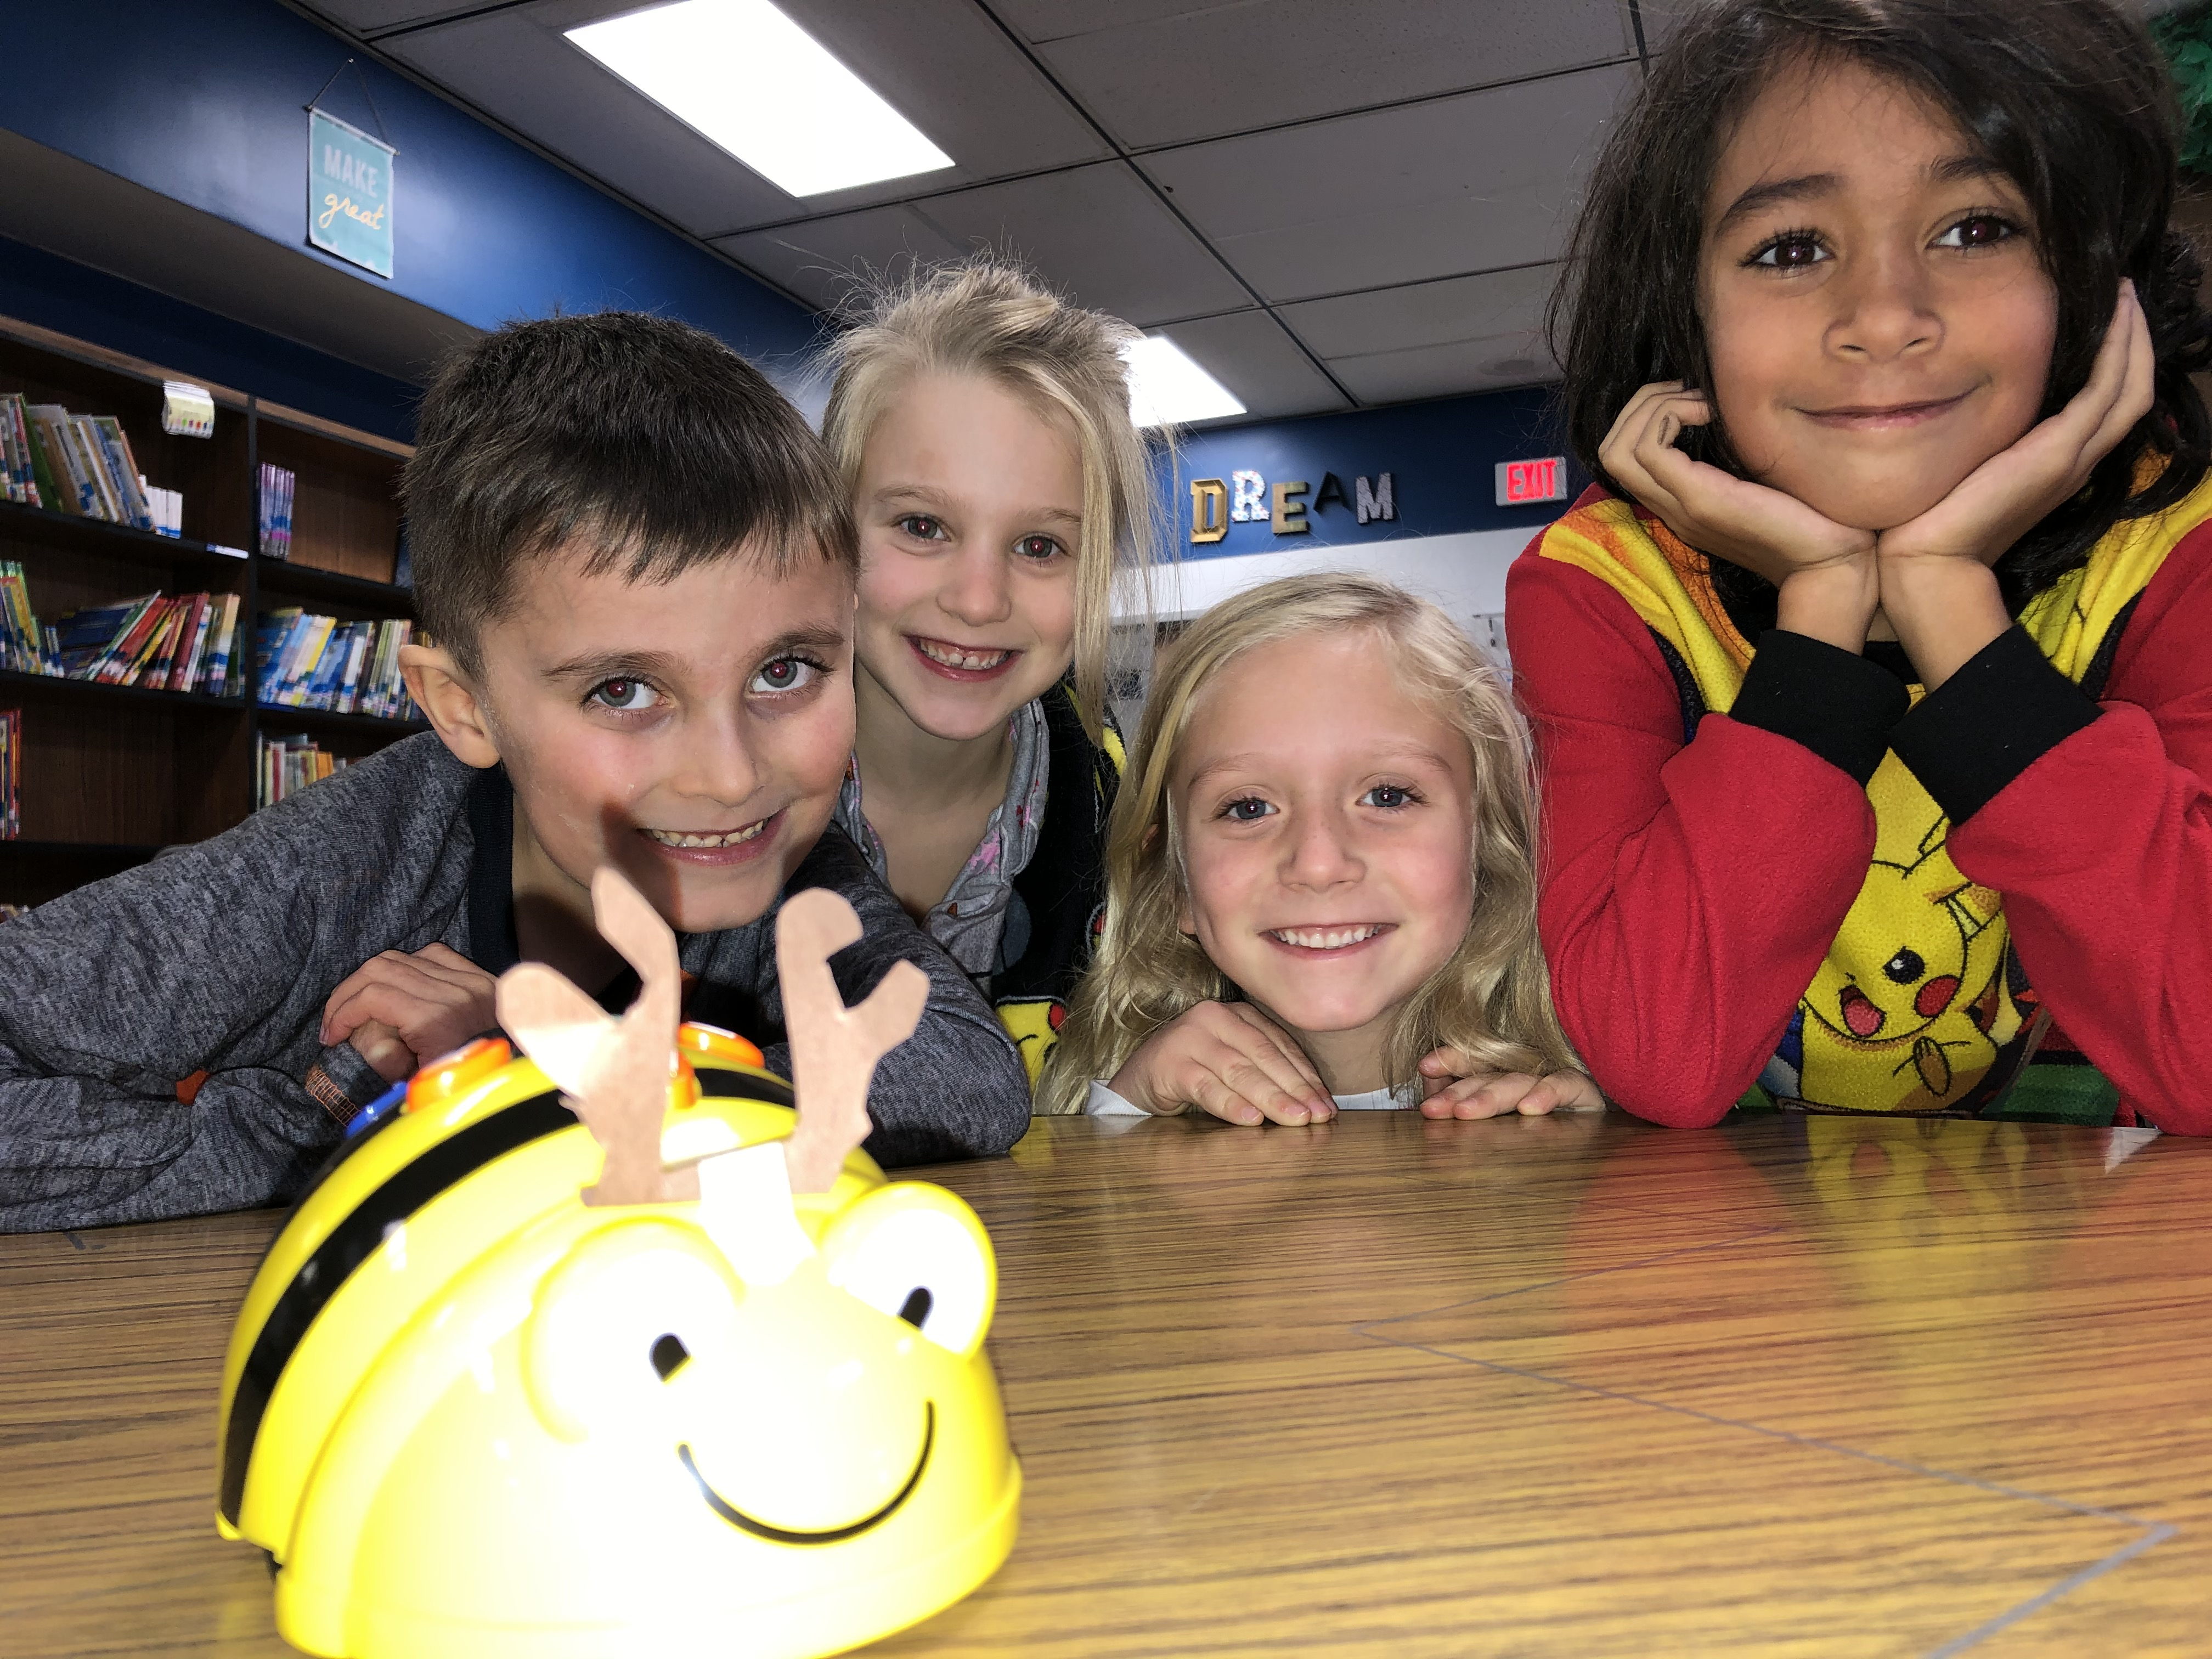 Students with Beebot image